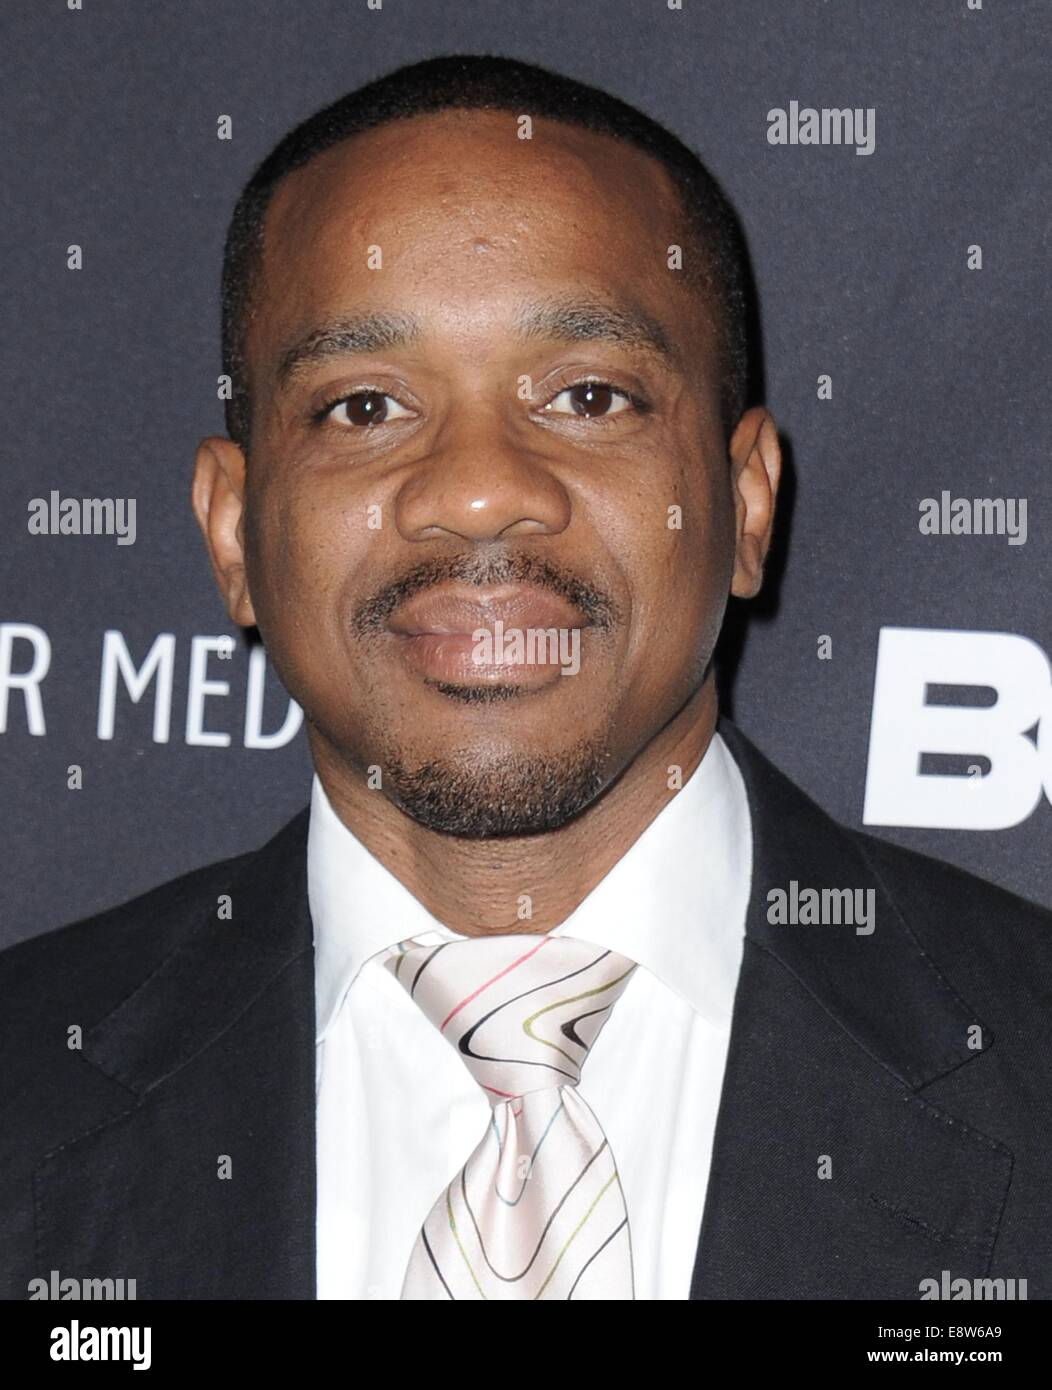 is duane martin dating another man